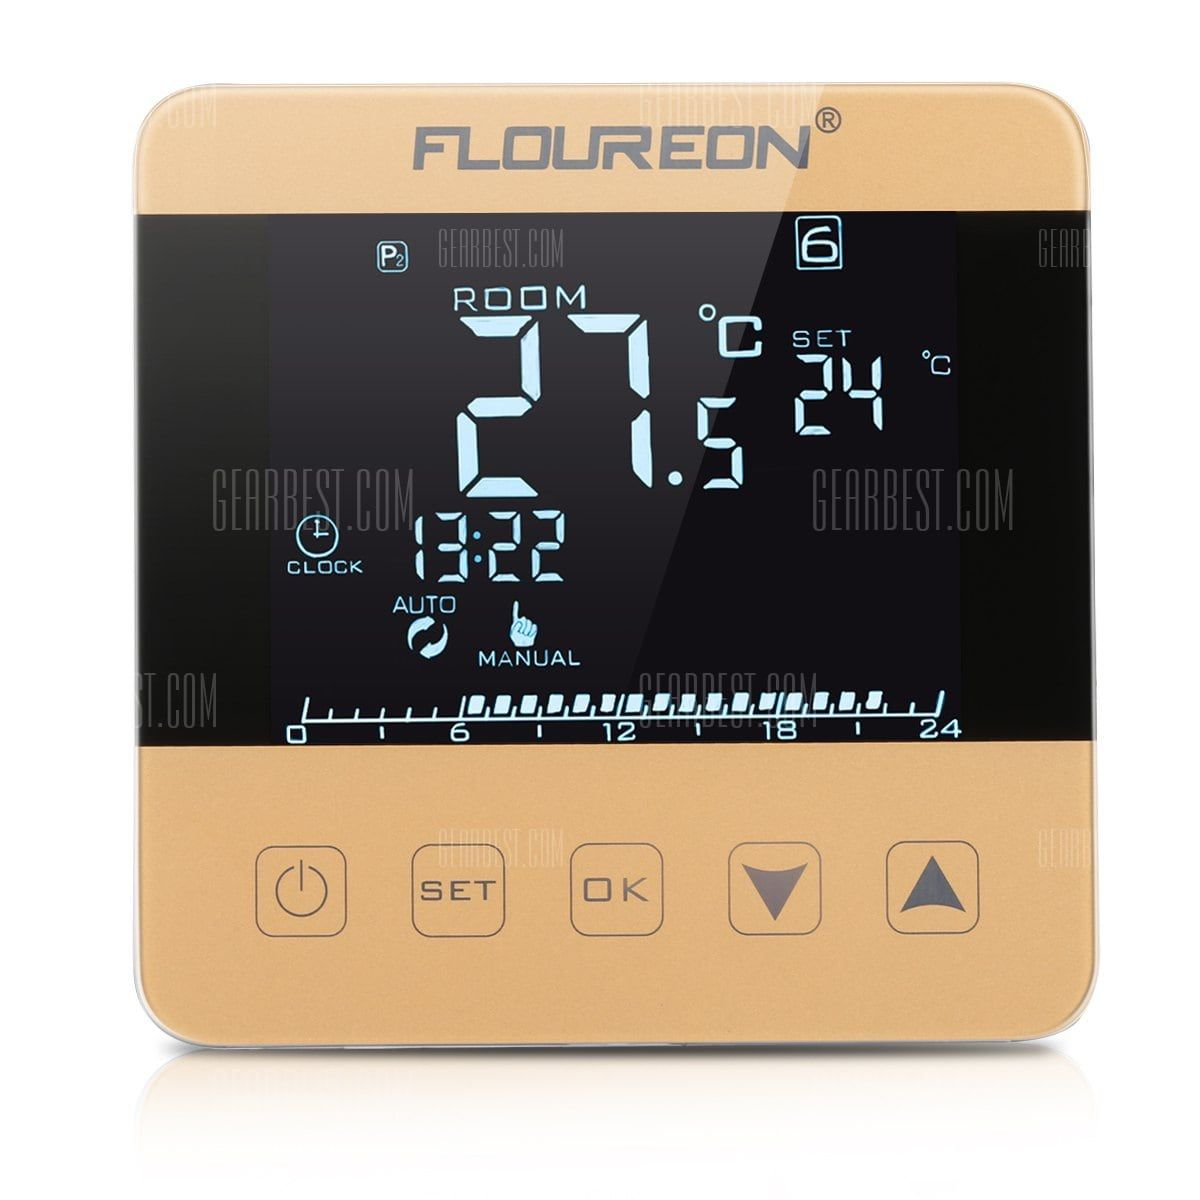 Pl Floureon Electric Heating Thermostat Lcd Display Temperature Controller Hy08we 3 Golden For 22 Heating Thermostat Electric Underfloor Heating Thermostat